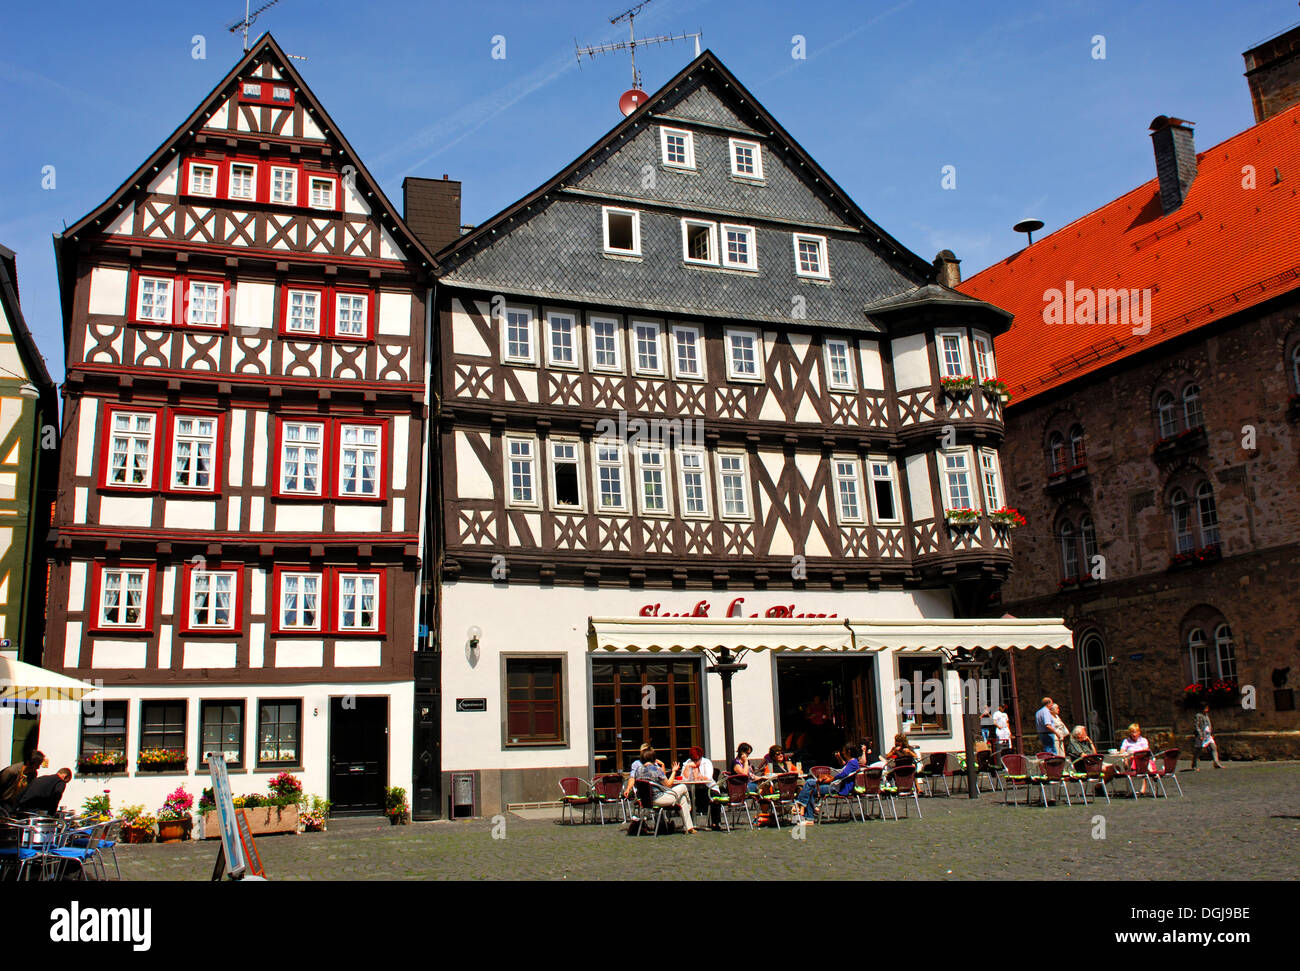 Buecking-Haus, a half-timbered house on the marketplace of Alsfeld, Hesse - Stock Image